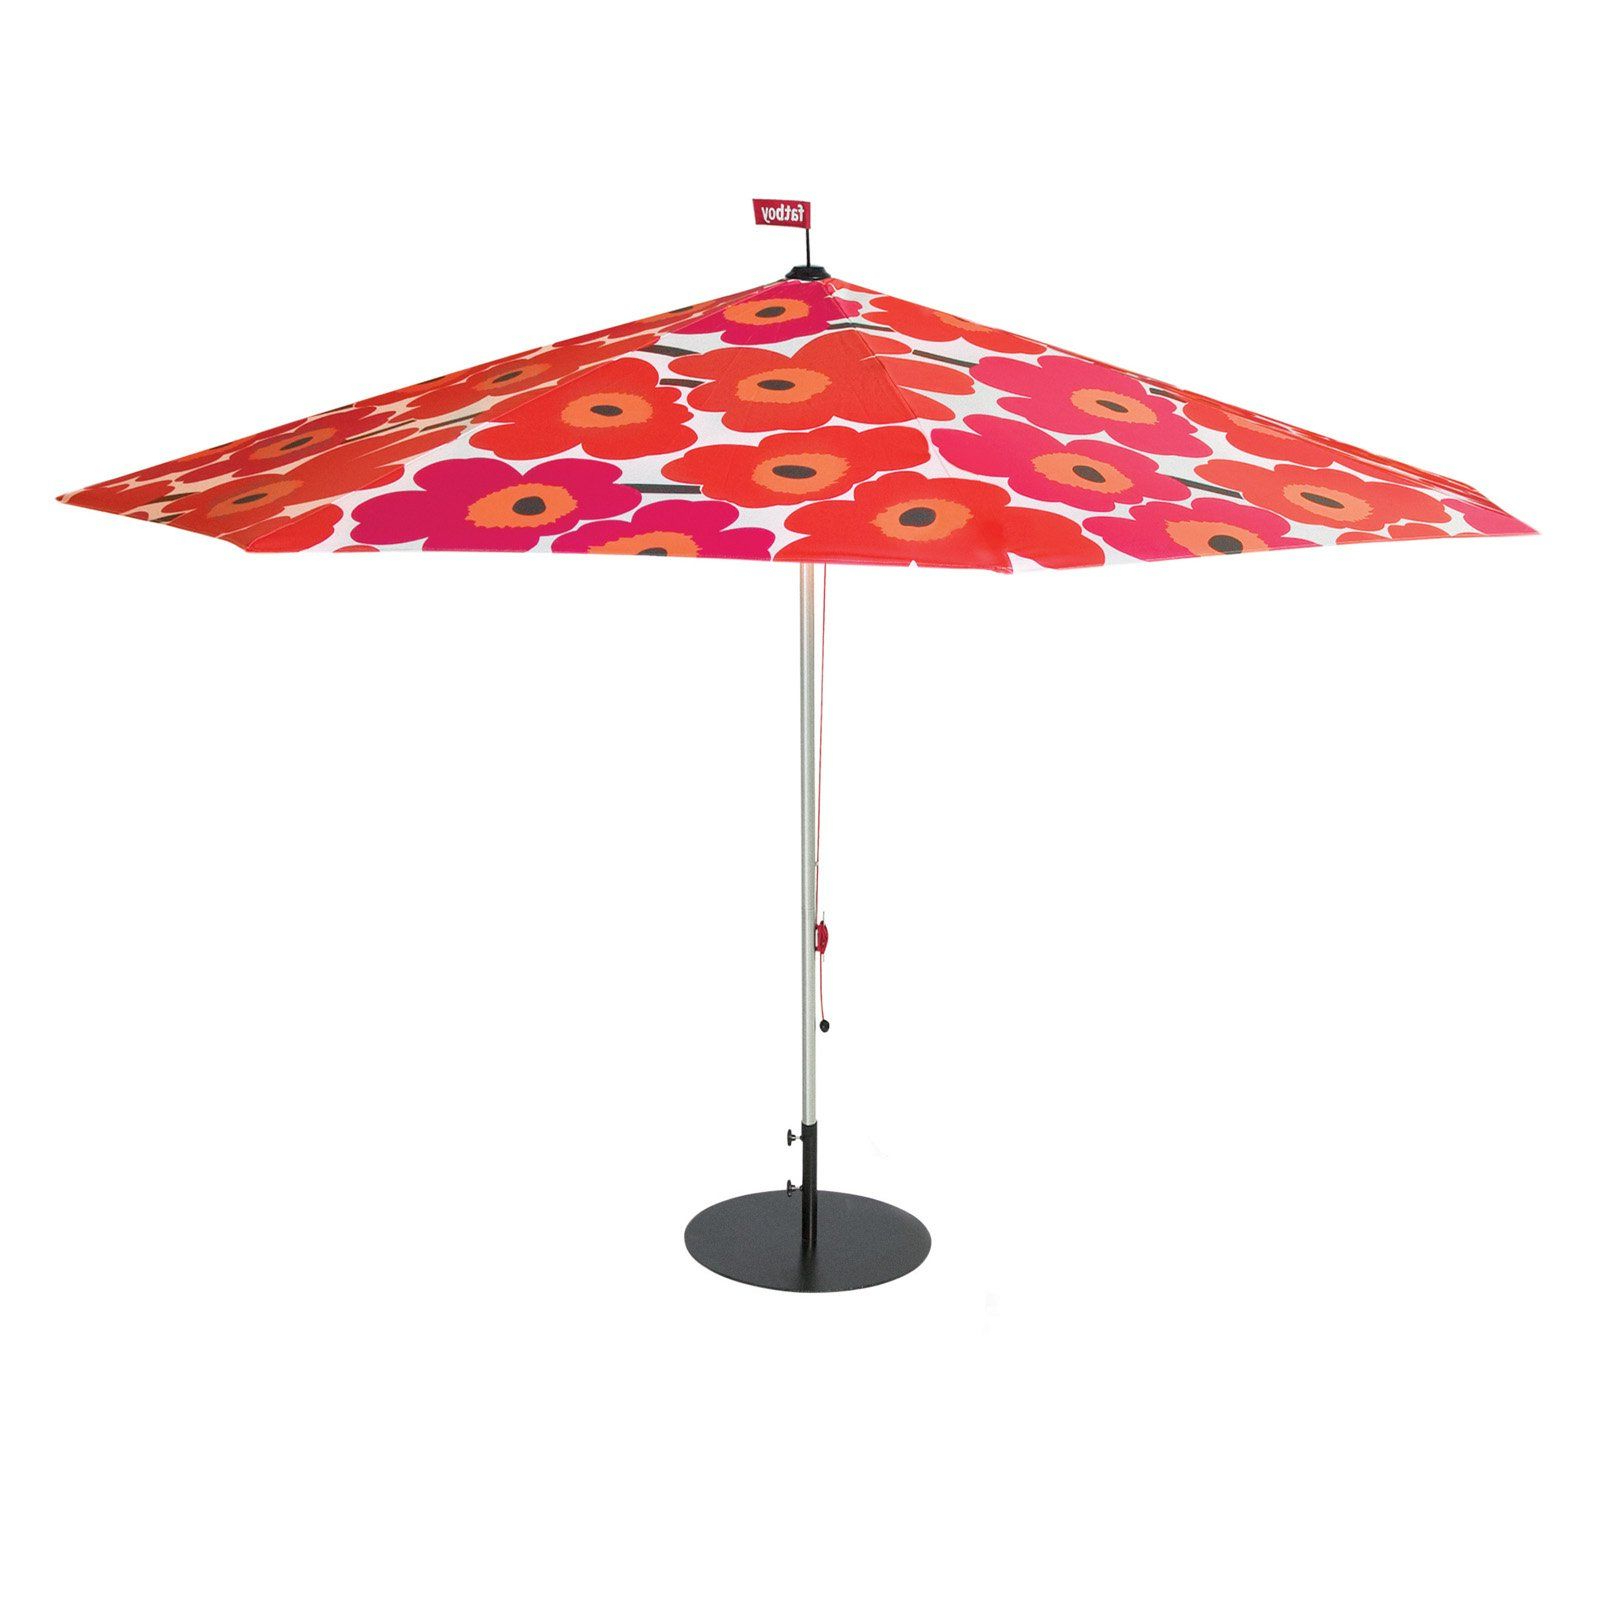 Lizarraga Market Umbrellas Inside Fashionable Fatboy Marimekko Parasol. (View 11 of 20)